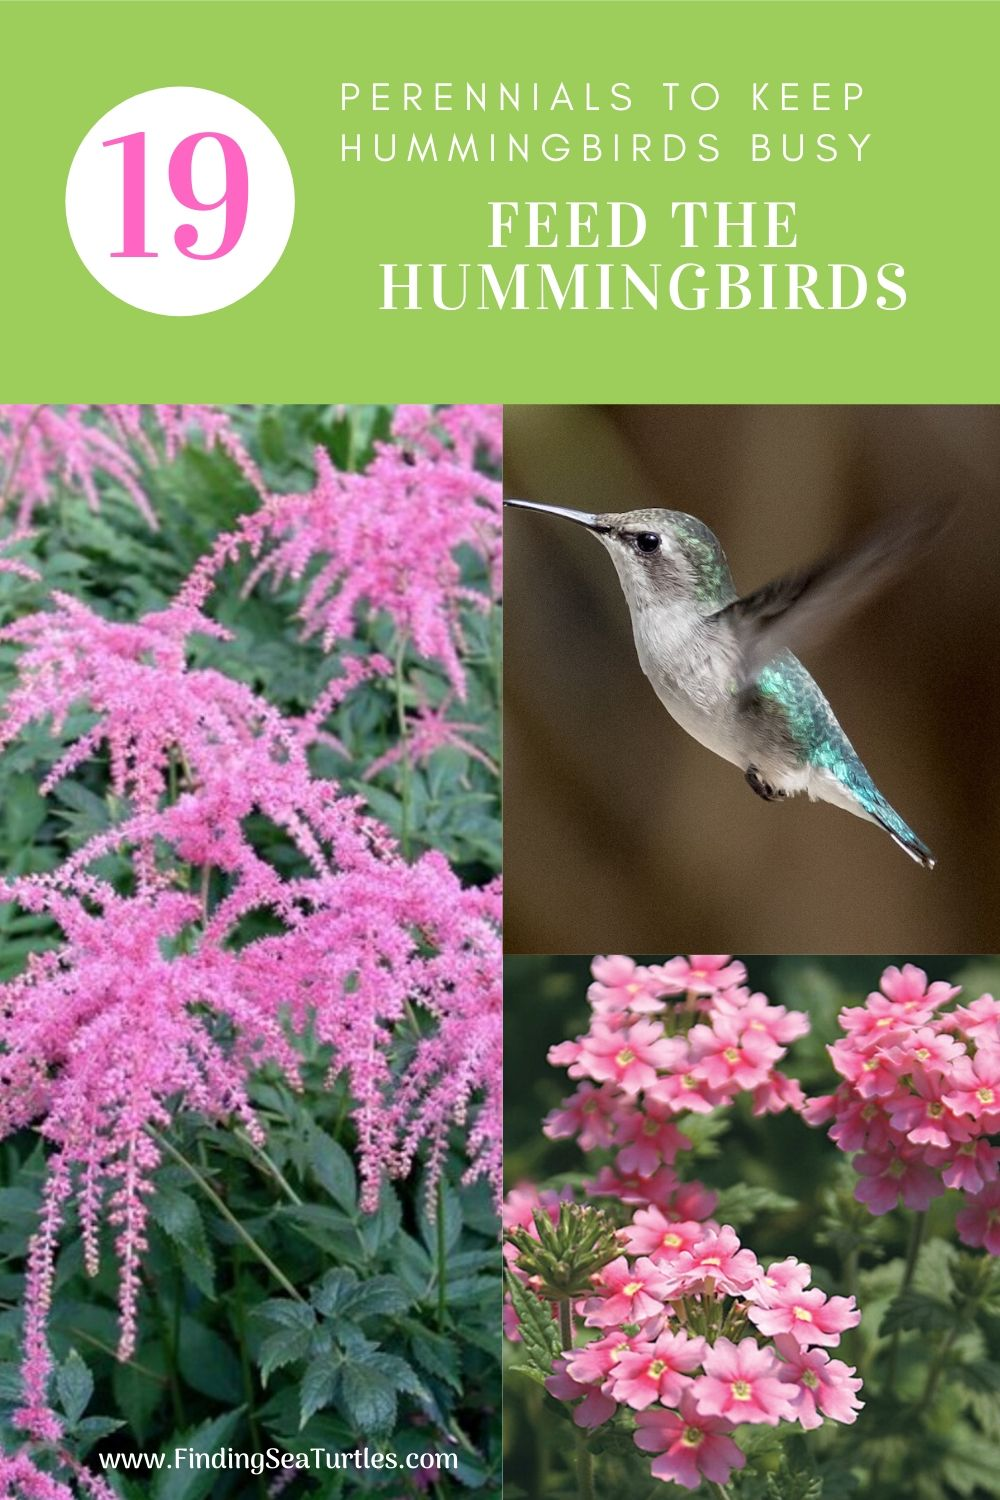 19 Perennials to keep Hummingbirds Busy Feed the Hummingbirds #Hummingbirds #Garden #Gardening #Plants #GardenPollinators #AttractHummingbirds #NectarRichPlants #BeneficialForPollinators